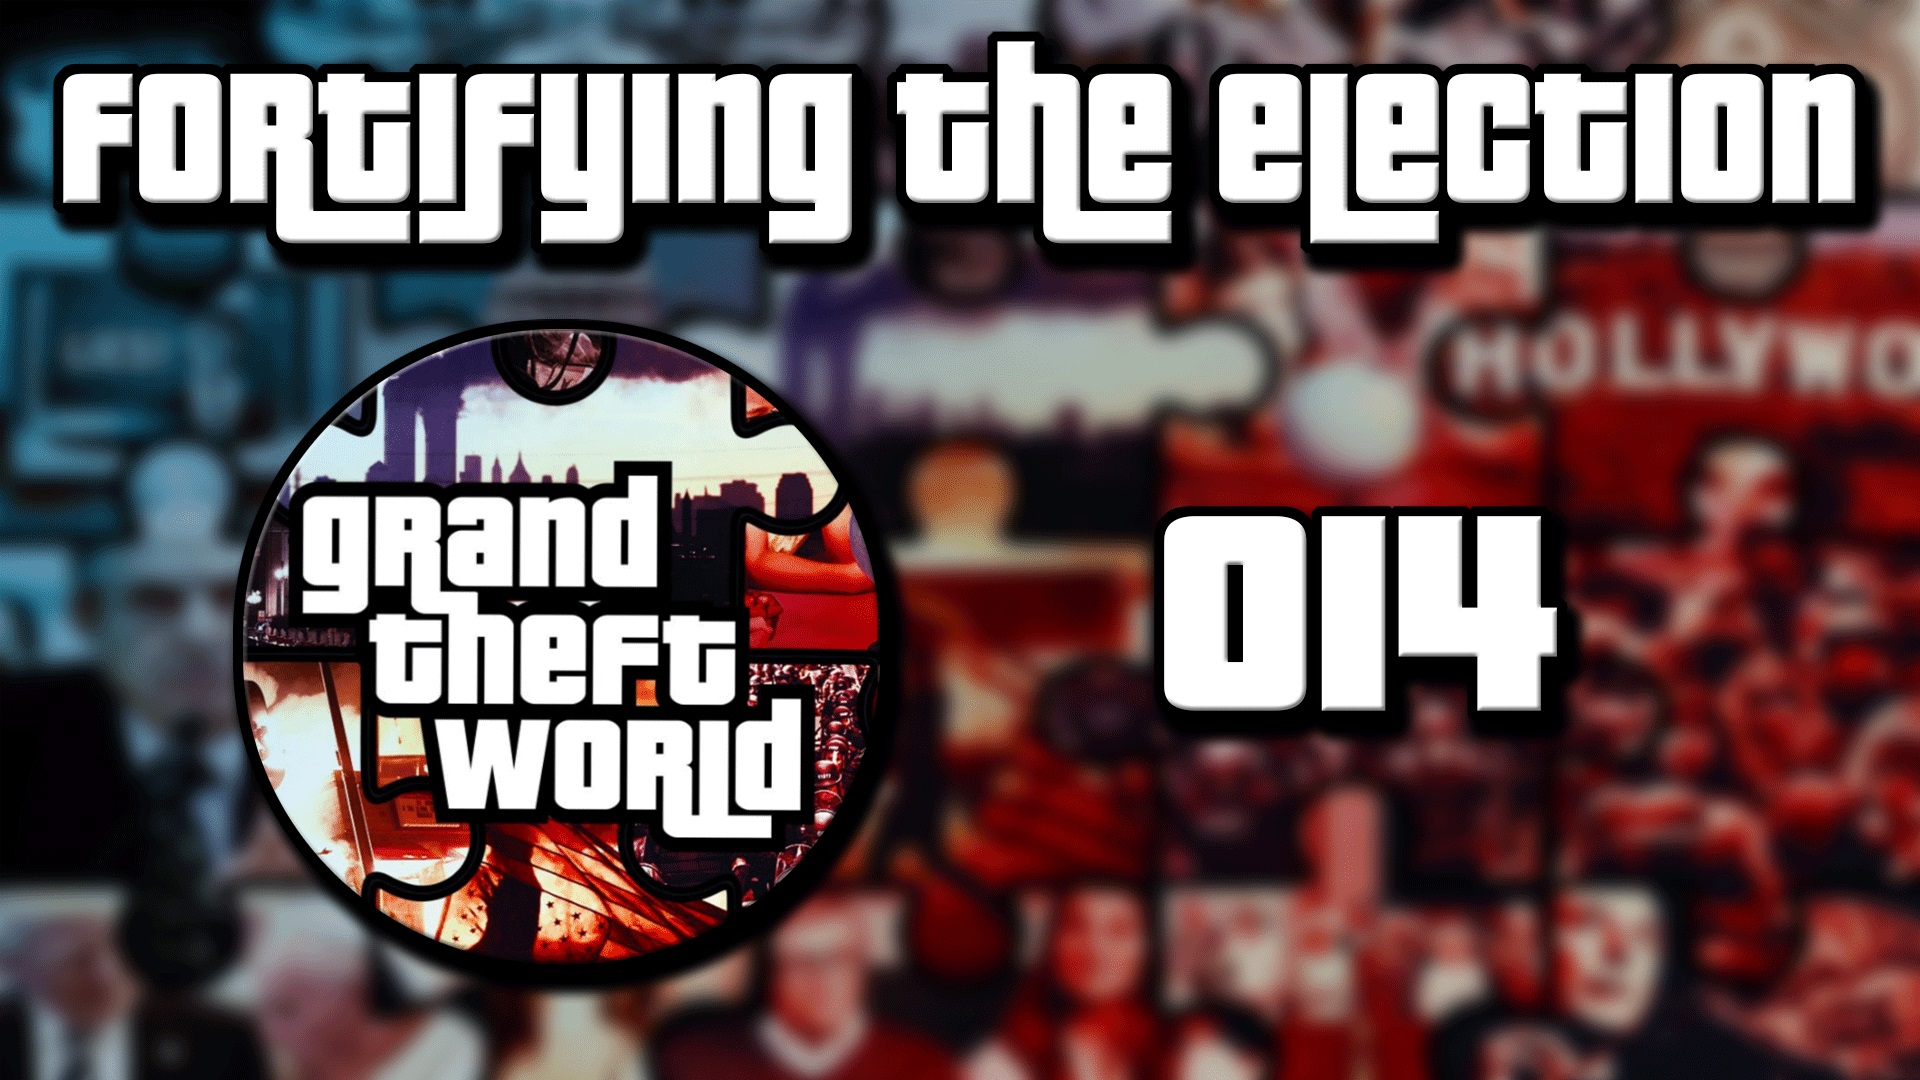 Grand Theft World Podcast 014 | Fortifying The Election